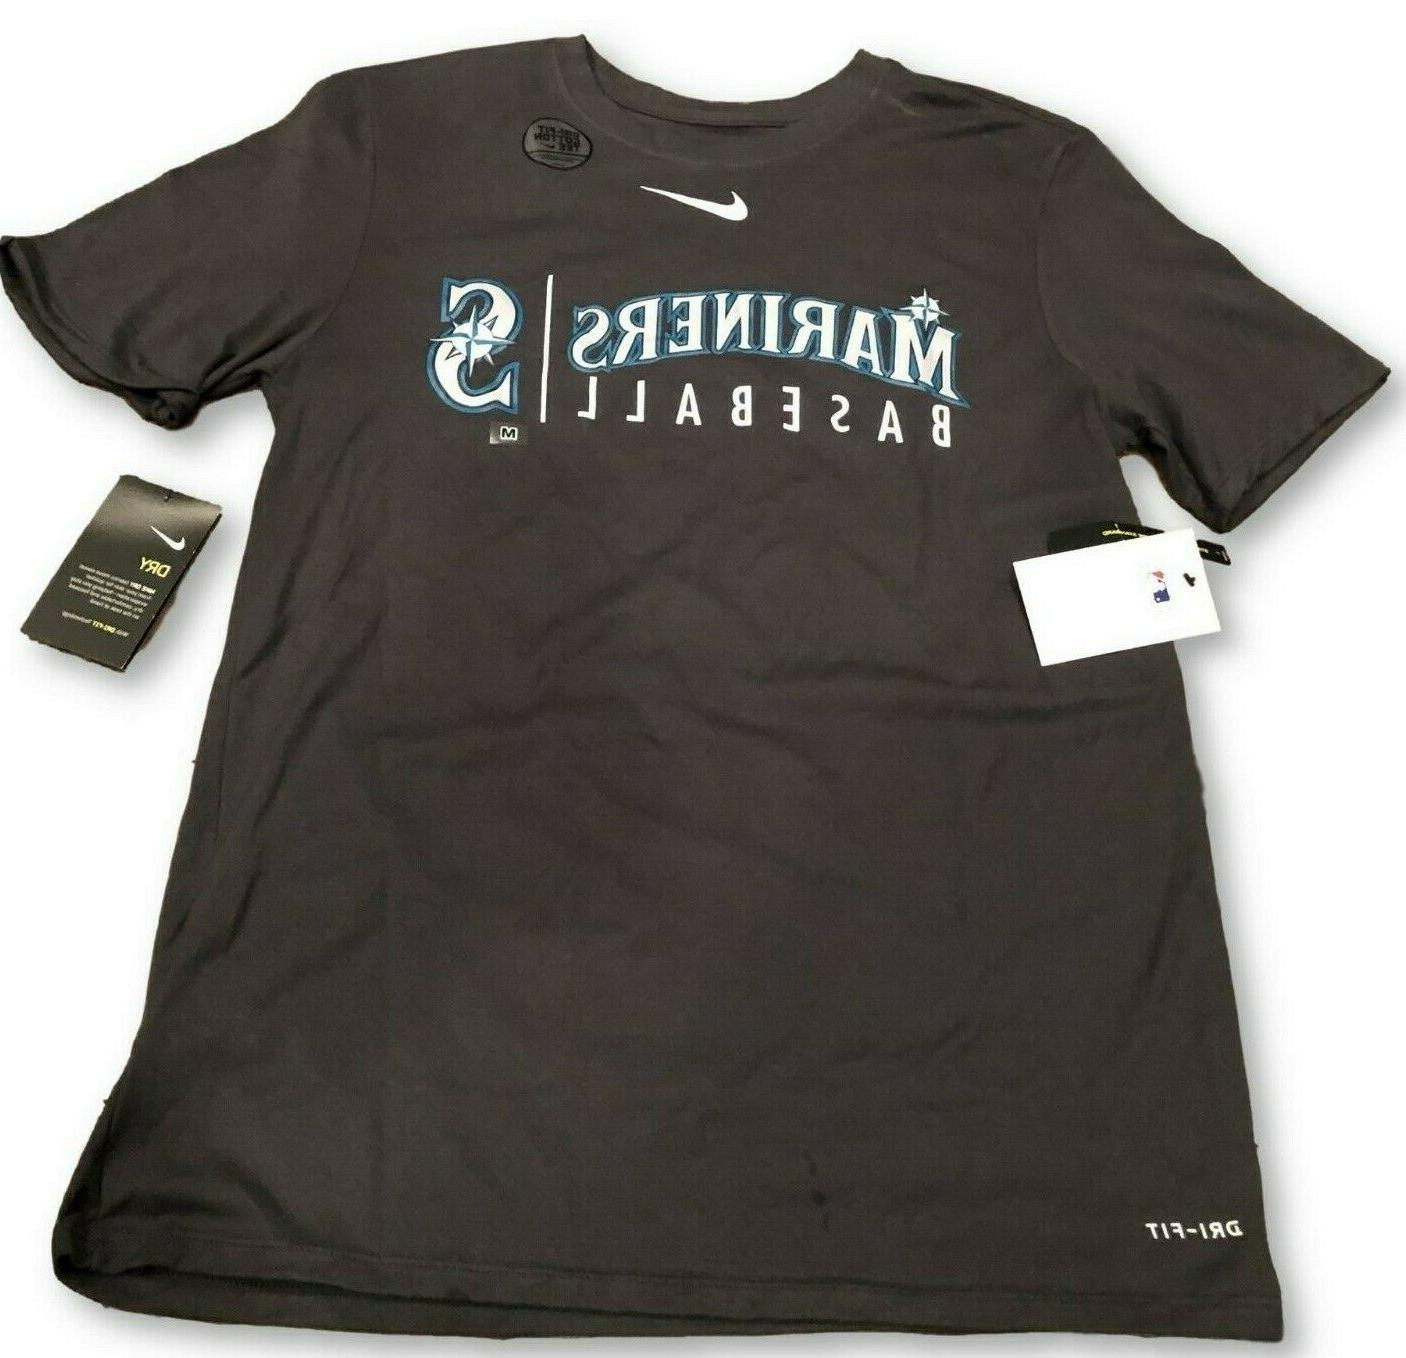 new nwt seattle mariners dri fit cotton